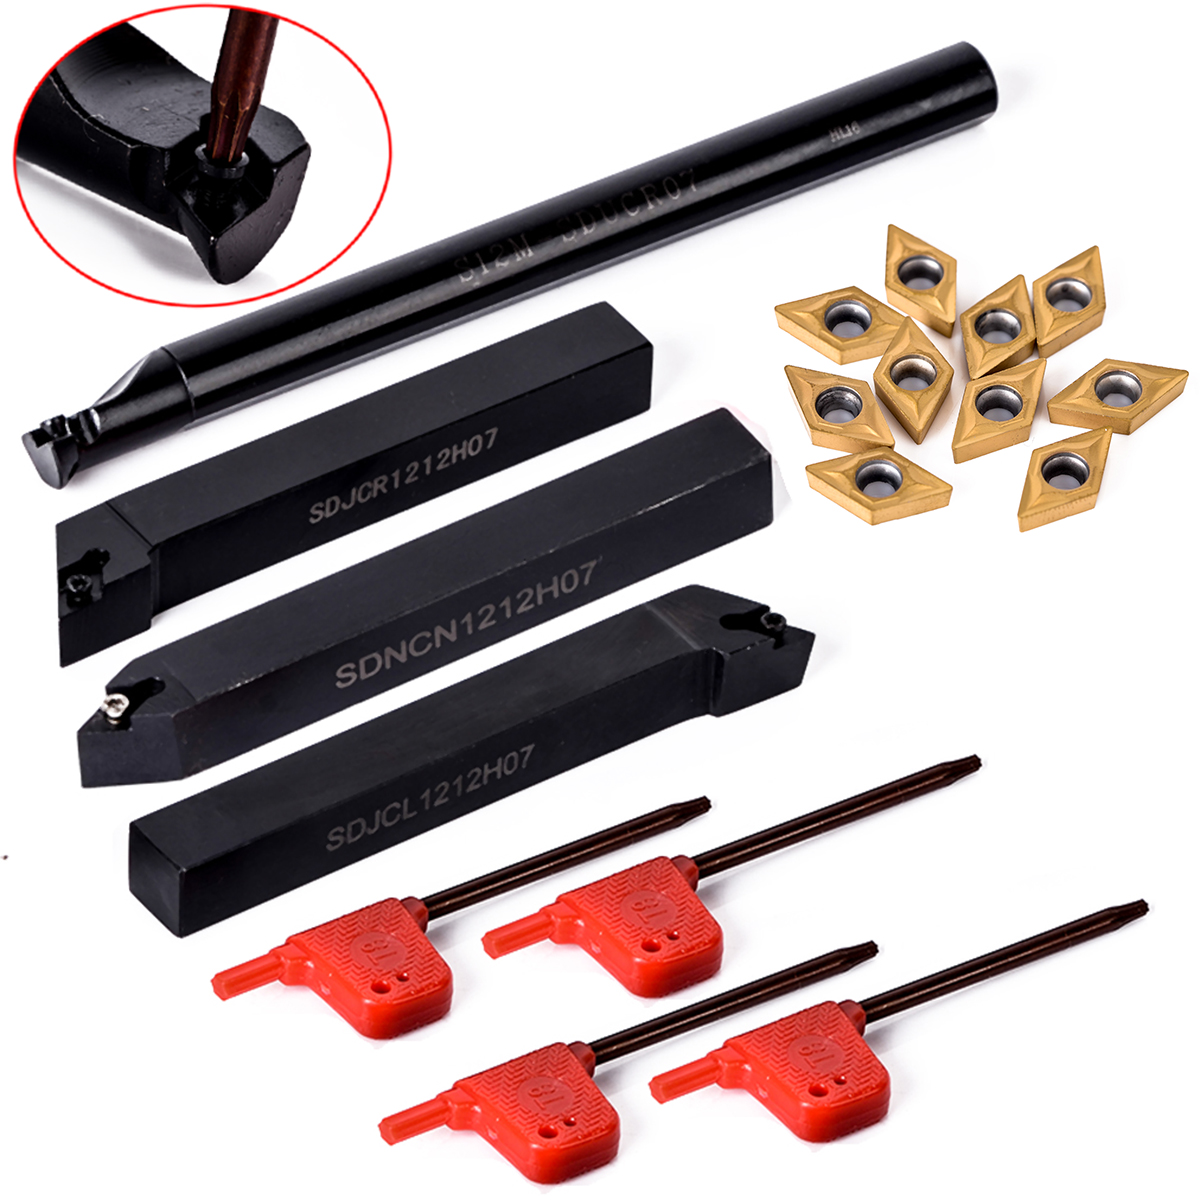 10pcs DCMT070204 Carbide Insert + 4pcs 12mm Boring Bar Tool Holder + 4pcs Wrench For Lathe Turning Tool